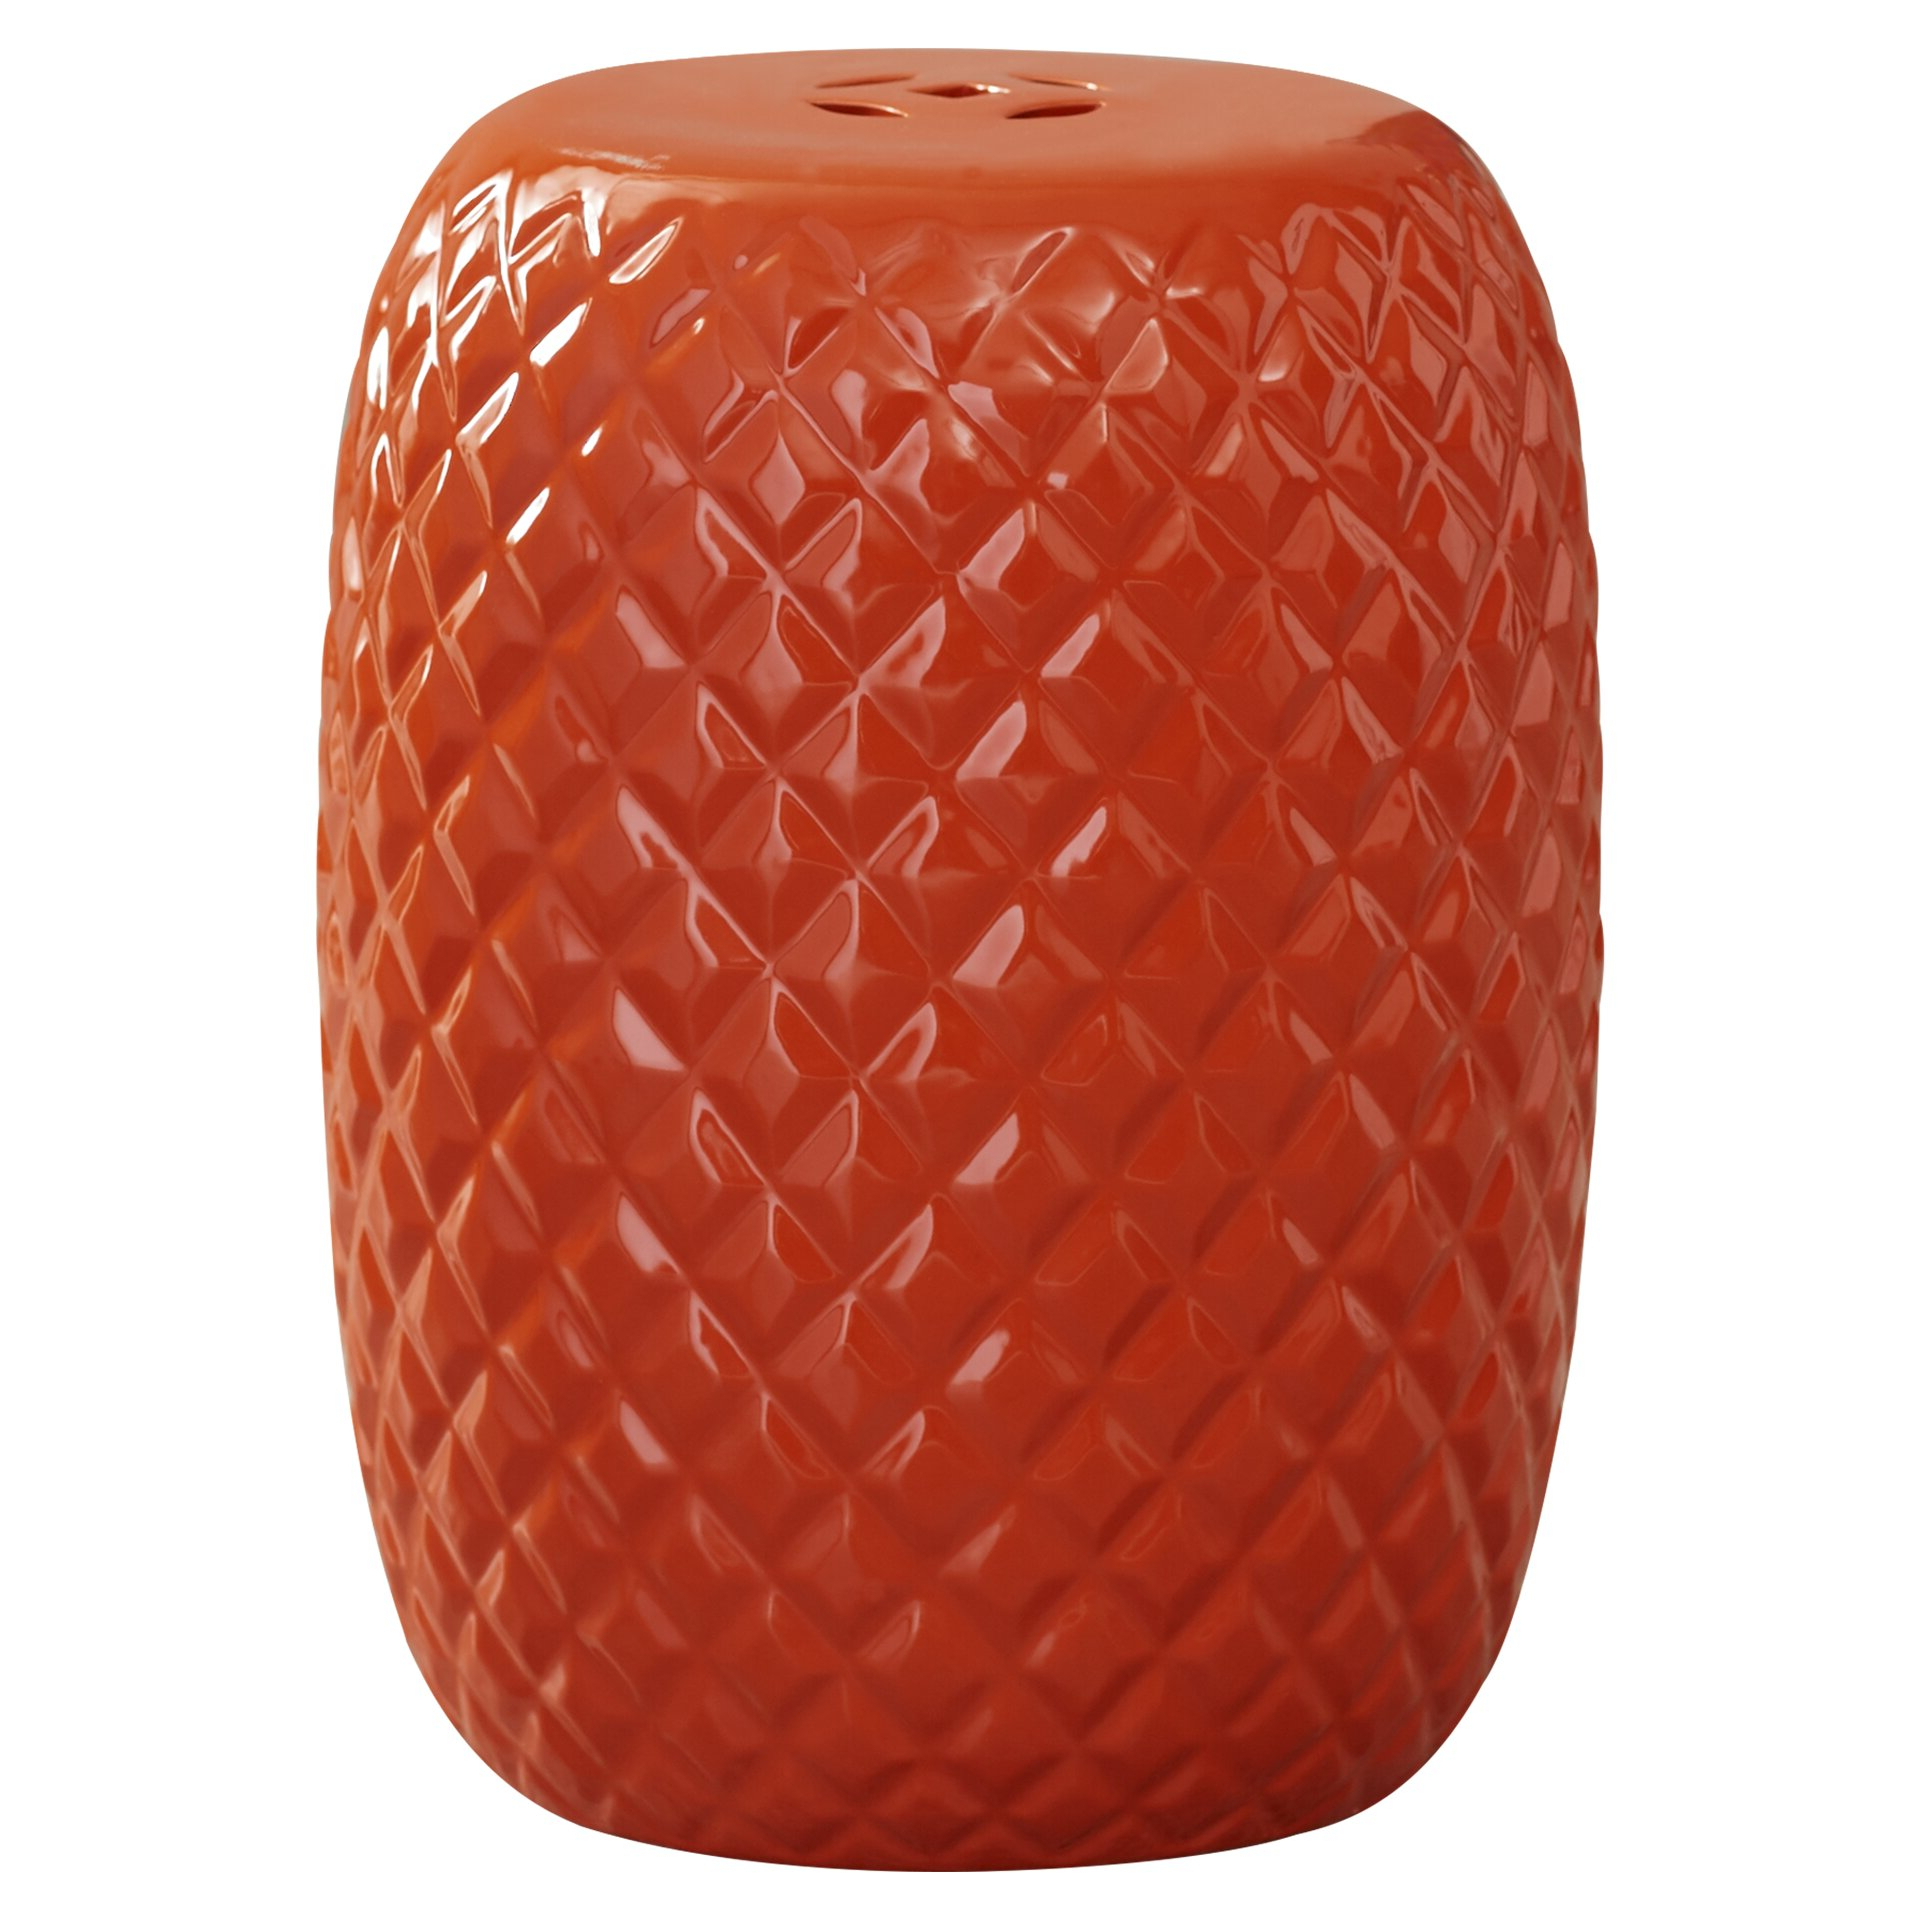 Ceramic Garden Stool In Most Current Renee Porcelain Garden Stools (View 17 of 30)